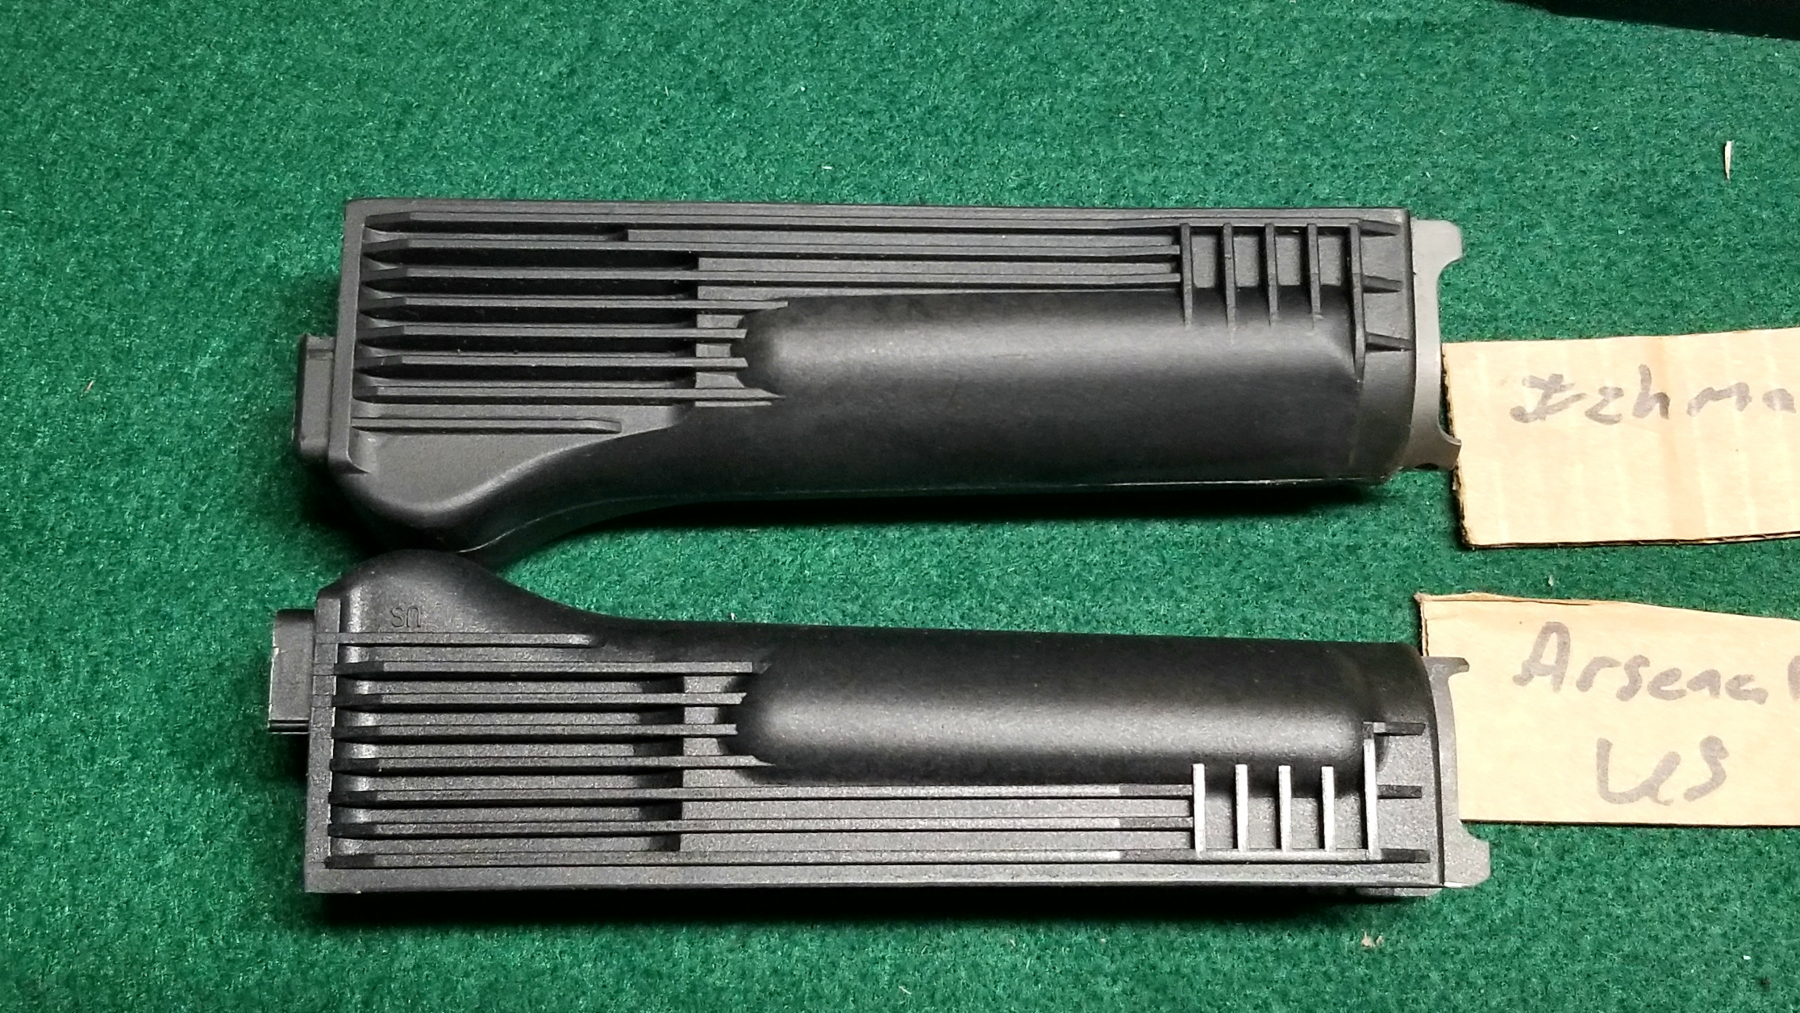 Top is Izhmash and Lower is Arsenal US. Clear shot of the differences in the rear lower swell of the handguards.